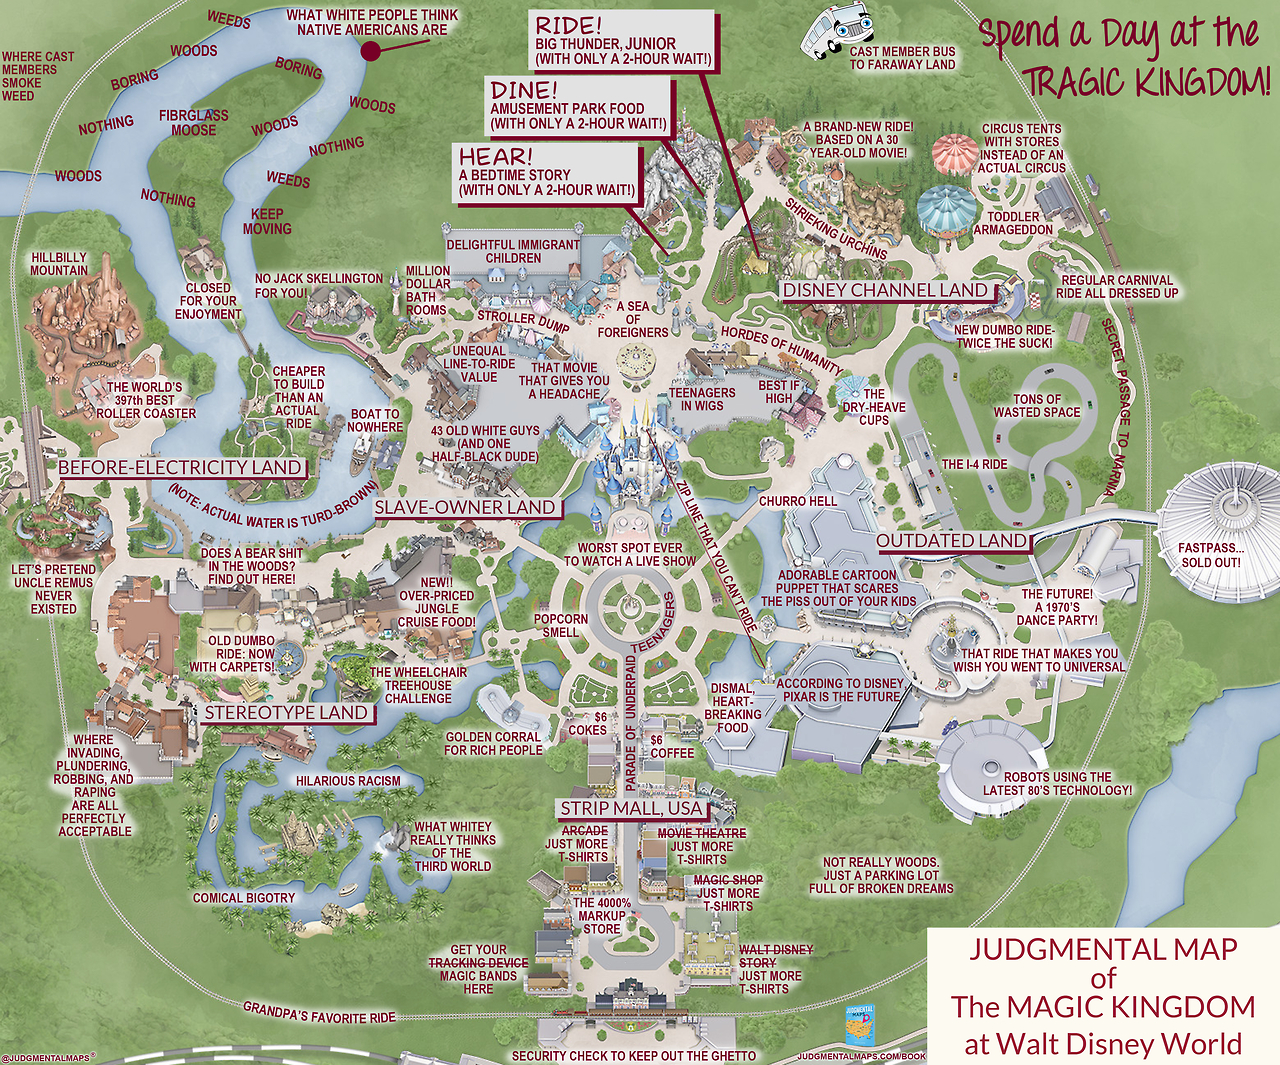 This 'judgmental Map' Of Magic Kingdom Is Pretty Accurate | Blogs - Magic Kingdom Orlando Florida Map